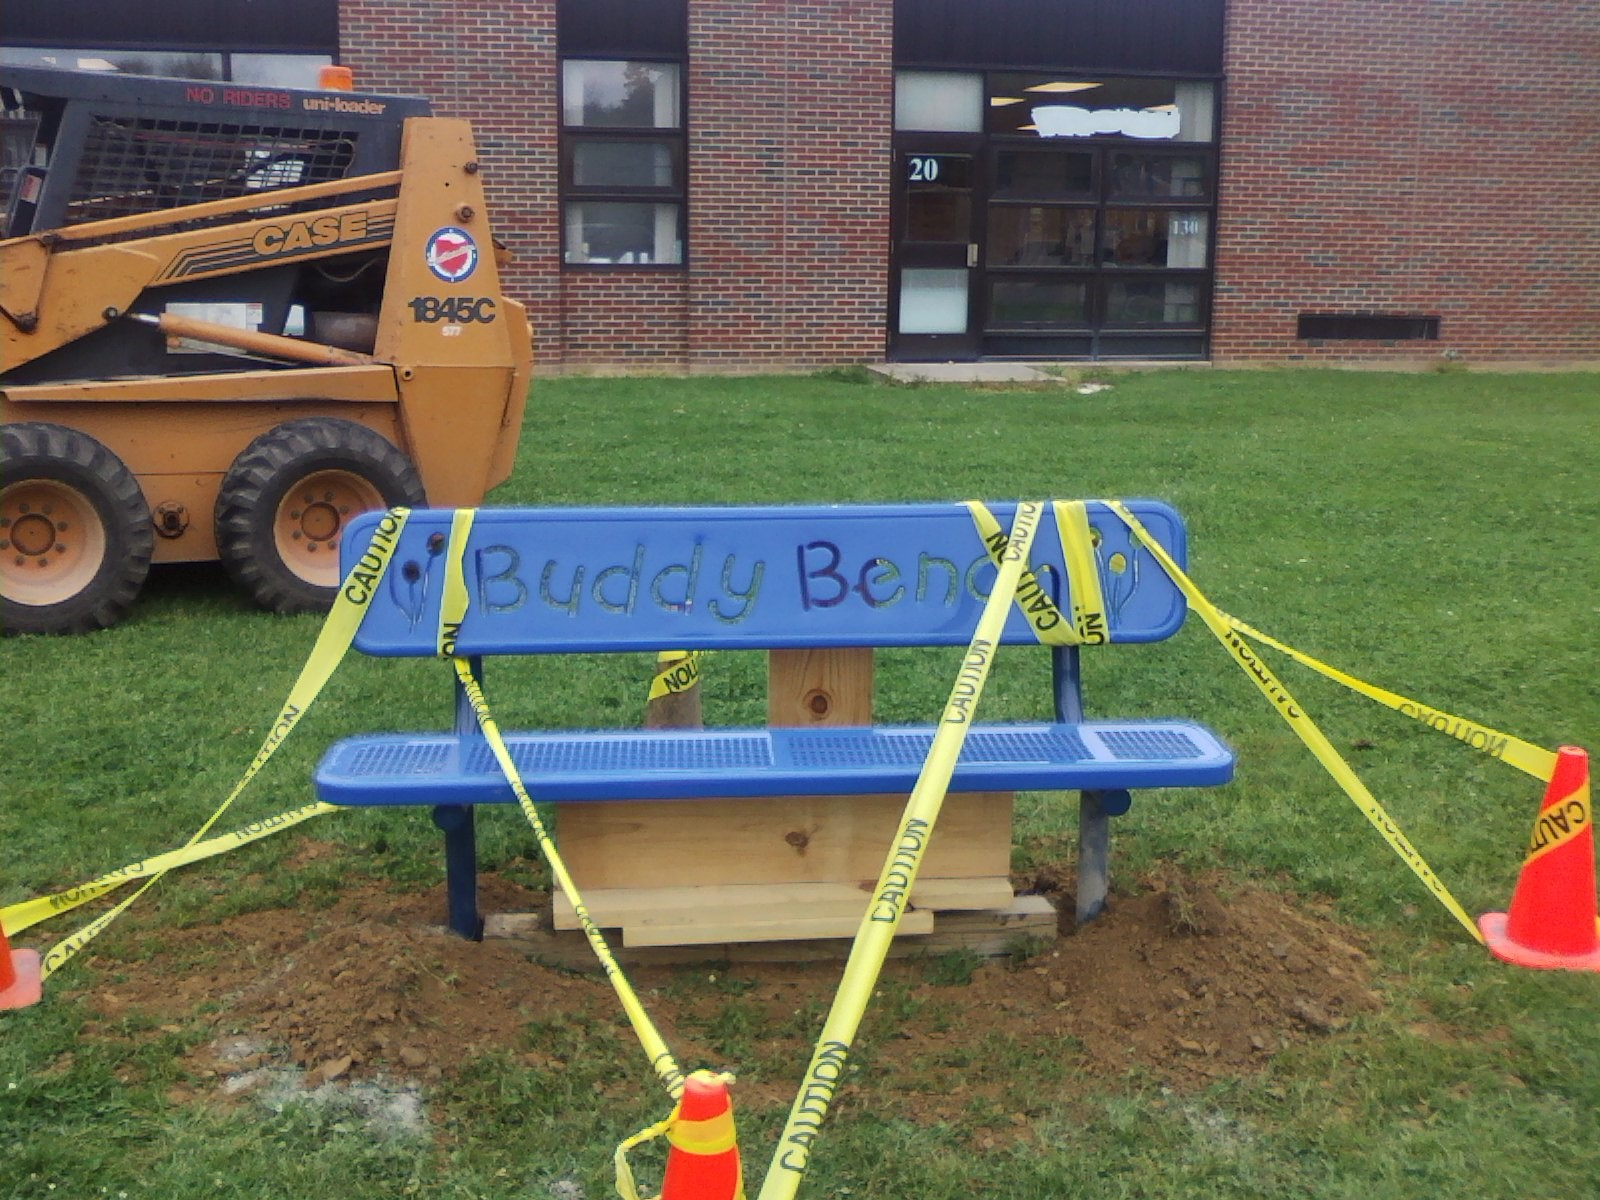 Installing our new Buddy Bench 2